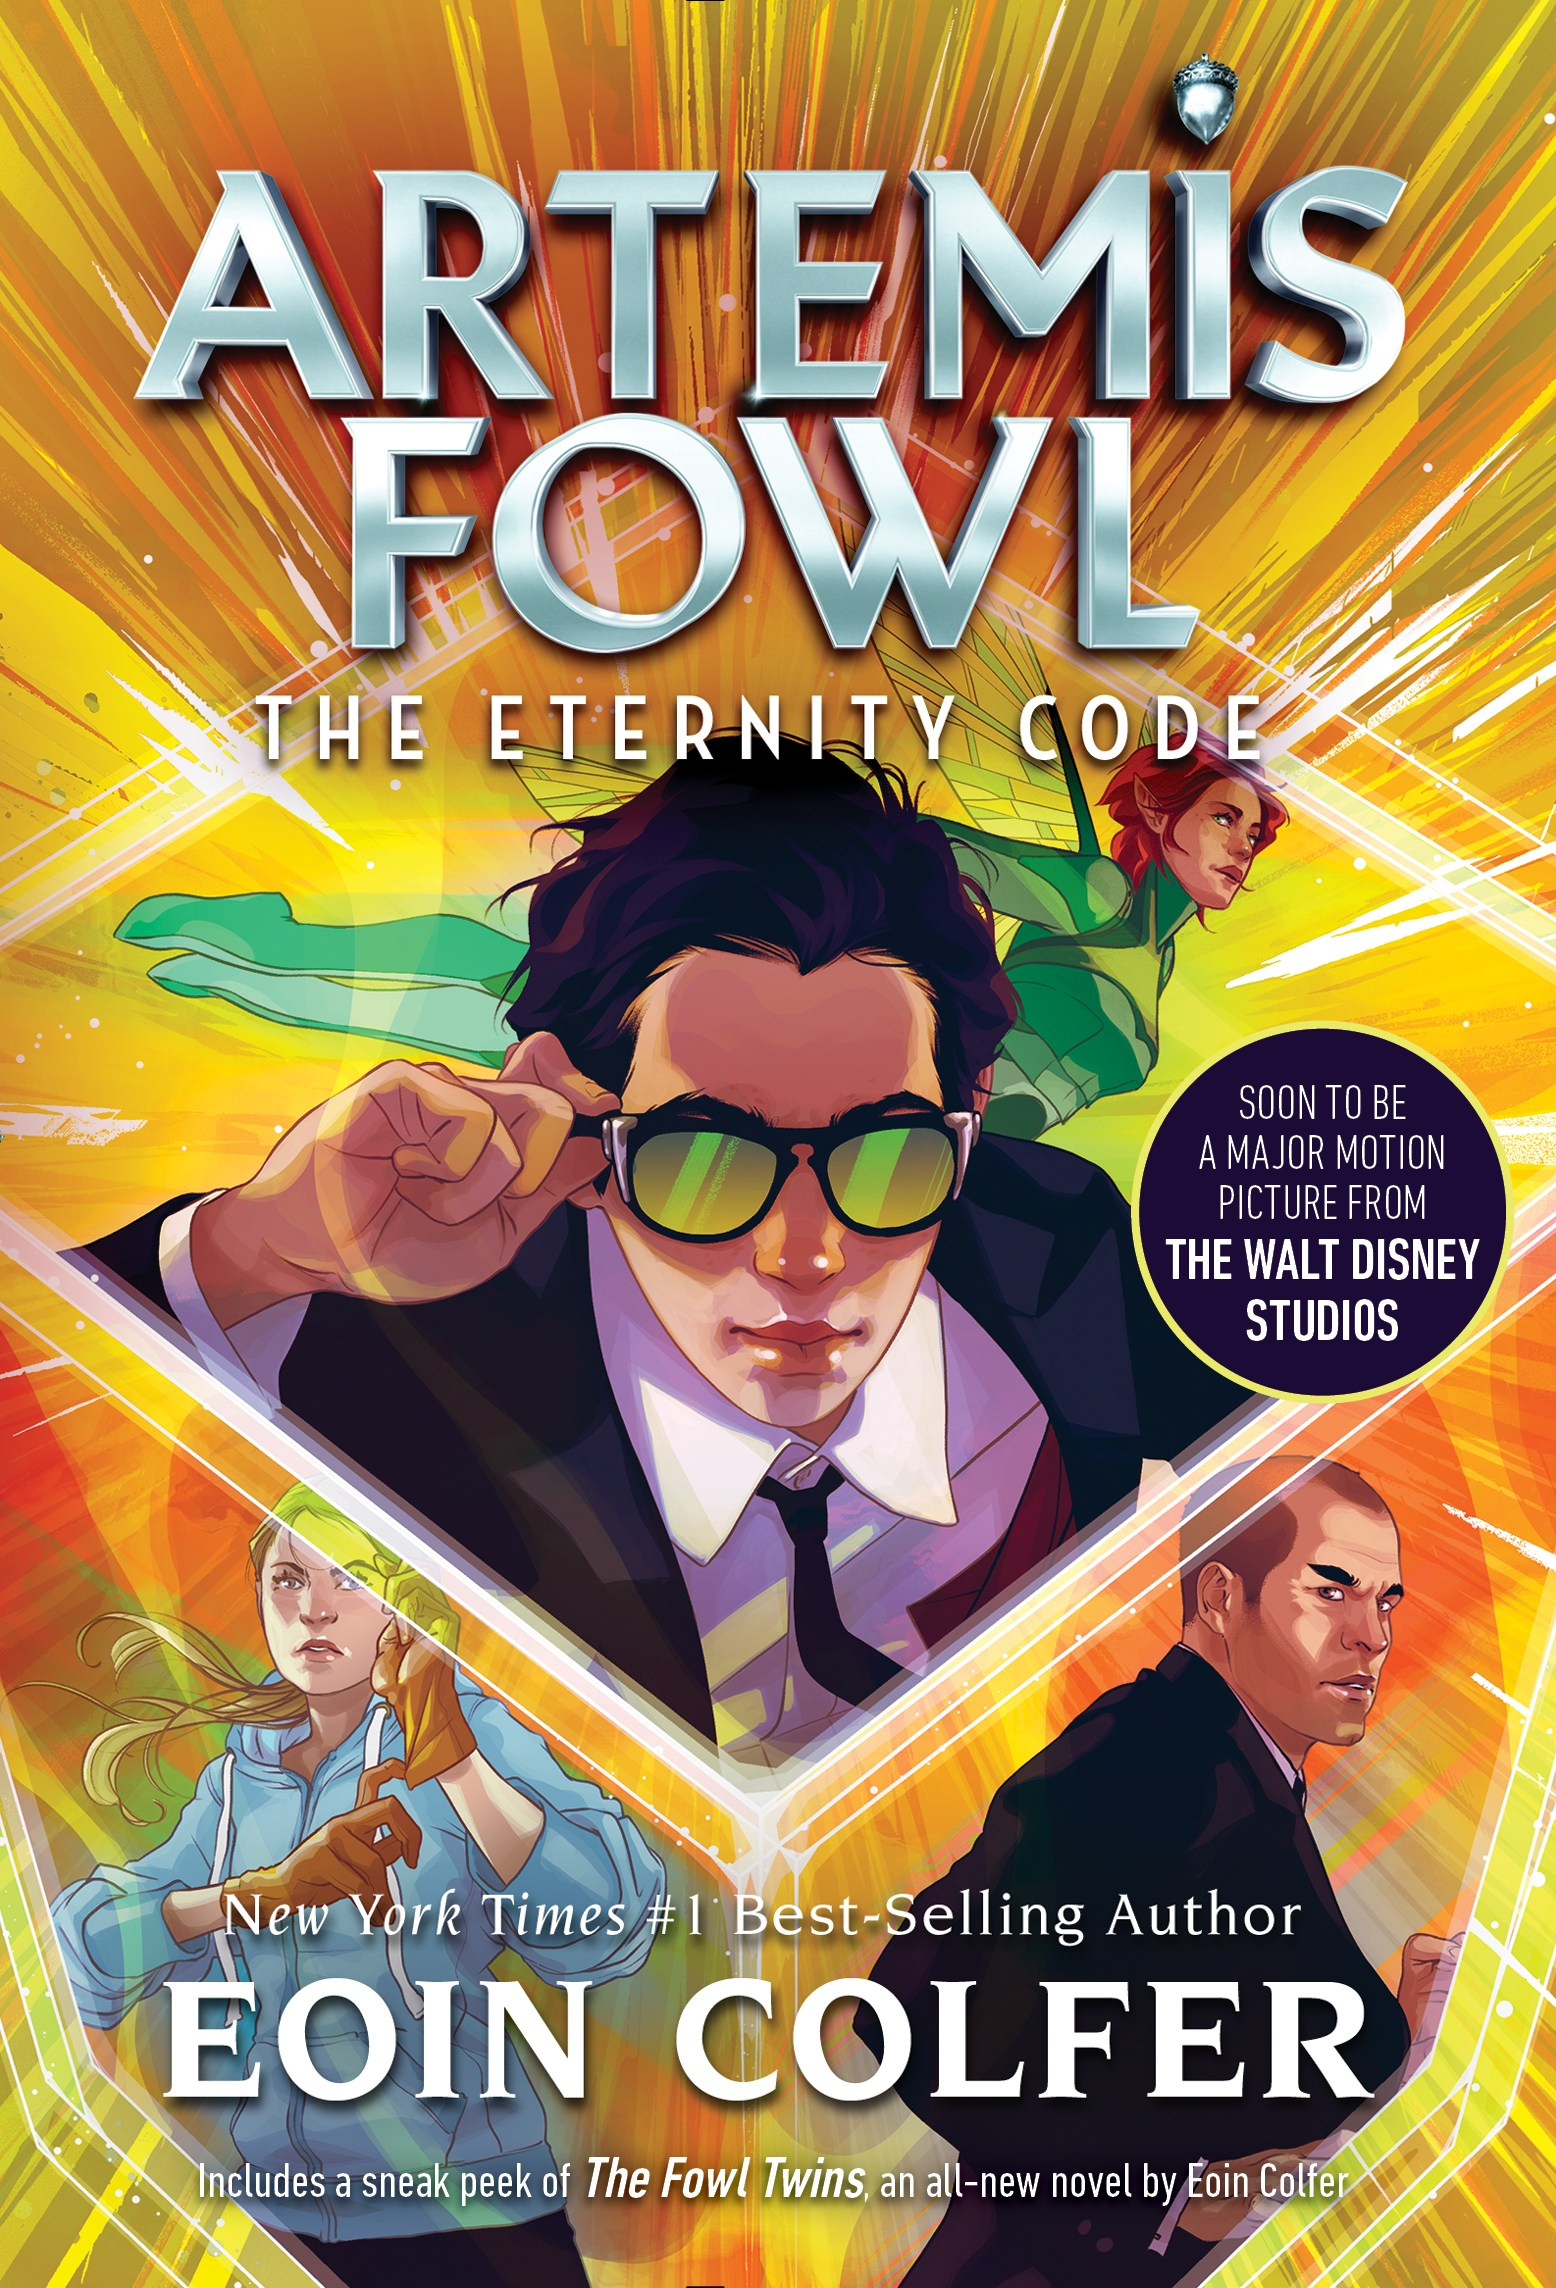 Book review of The Eternity Code, book 3 of the Artemis Fowl series by Eoin Colfer